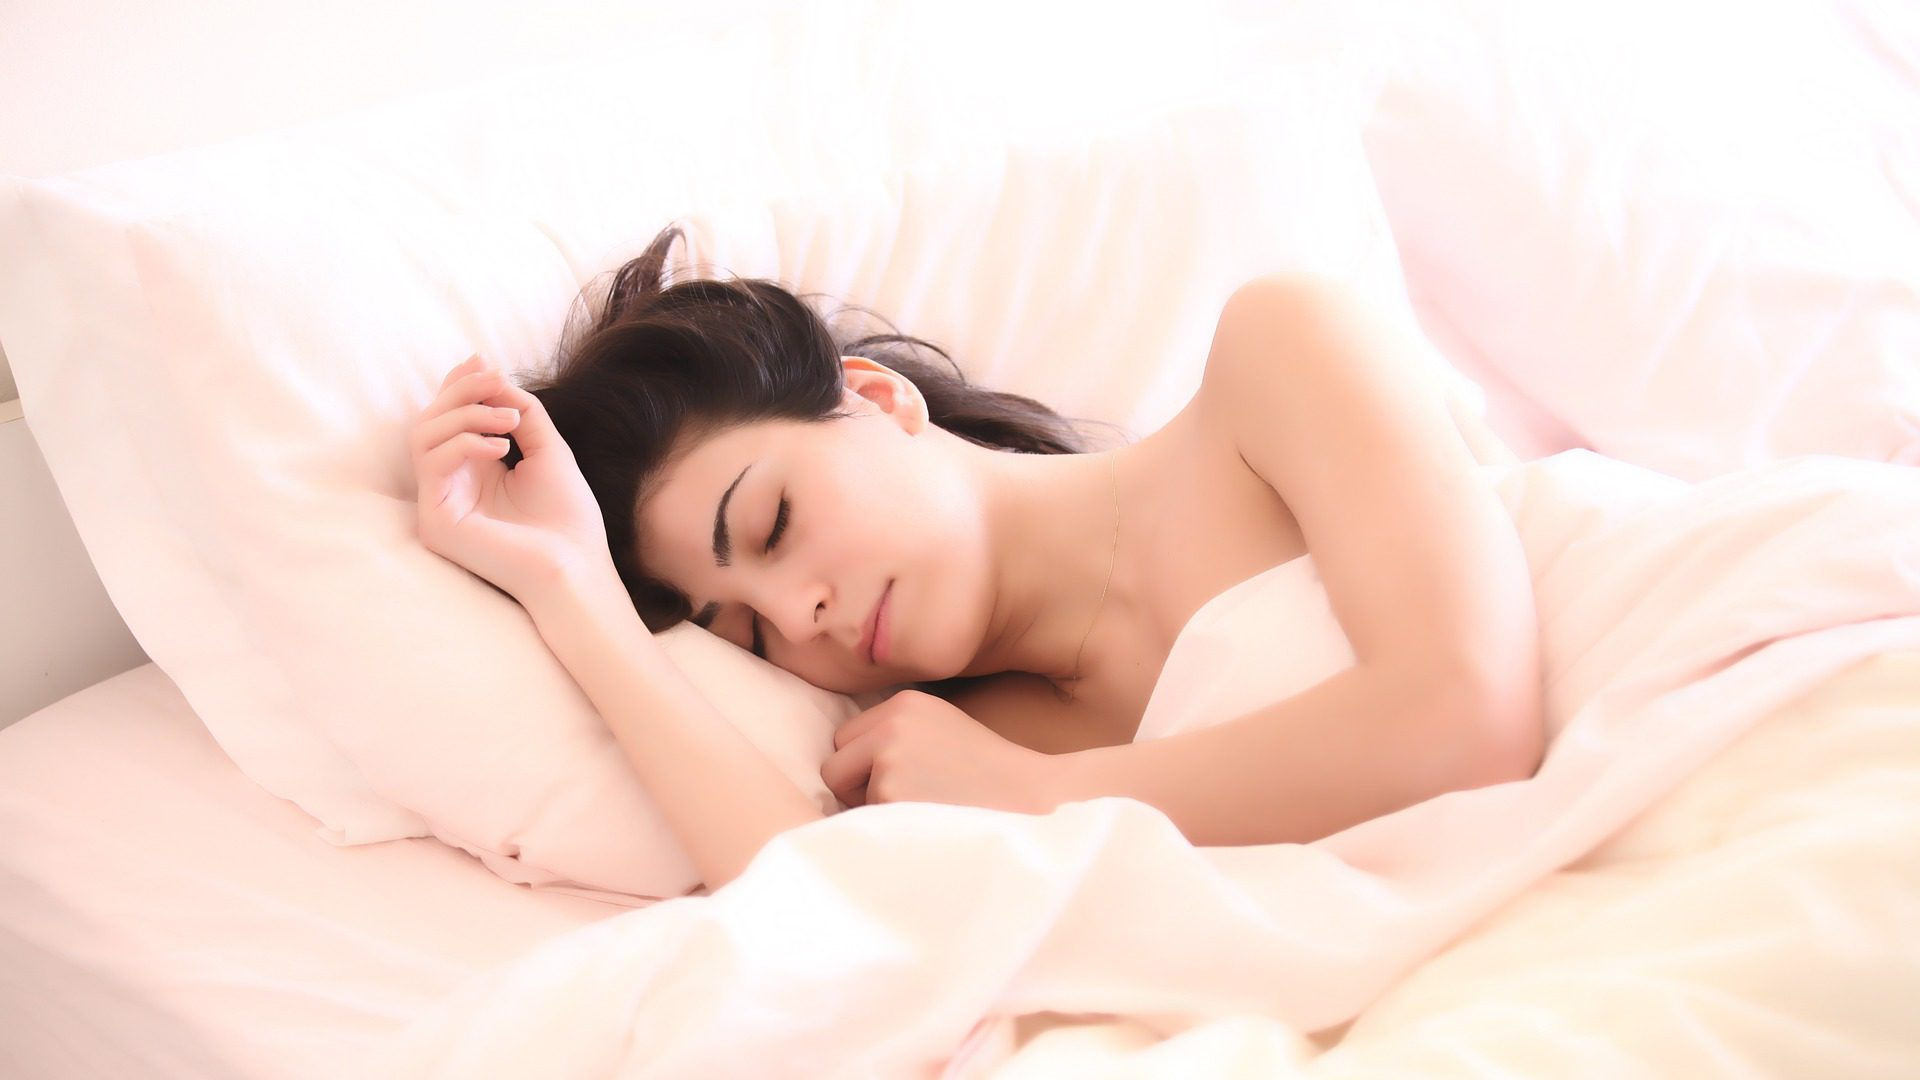 6 best Ways To Fix The Sleep Problems With The Help Of Science 5